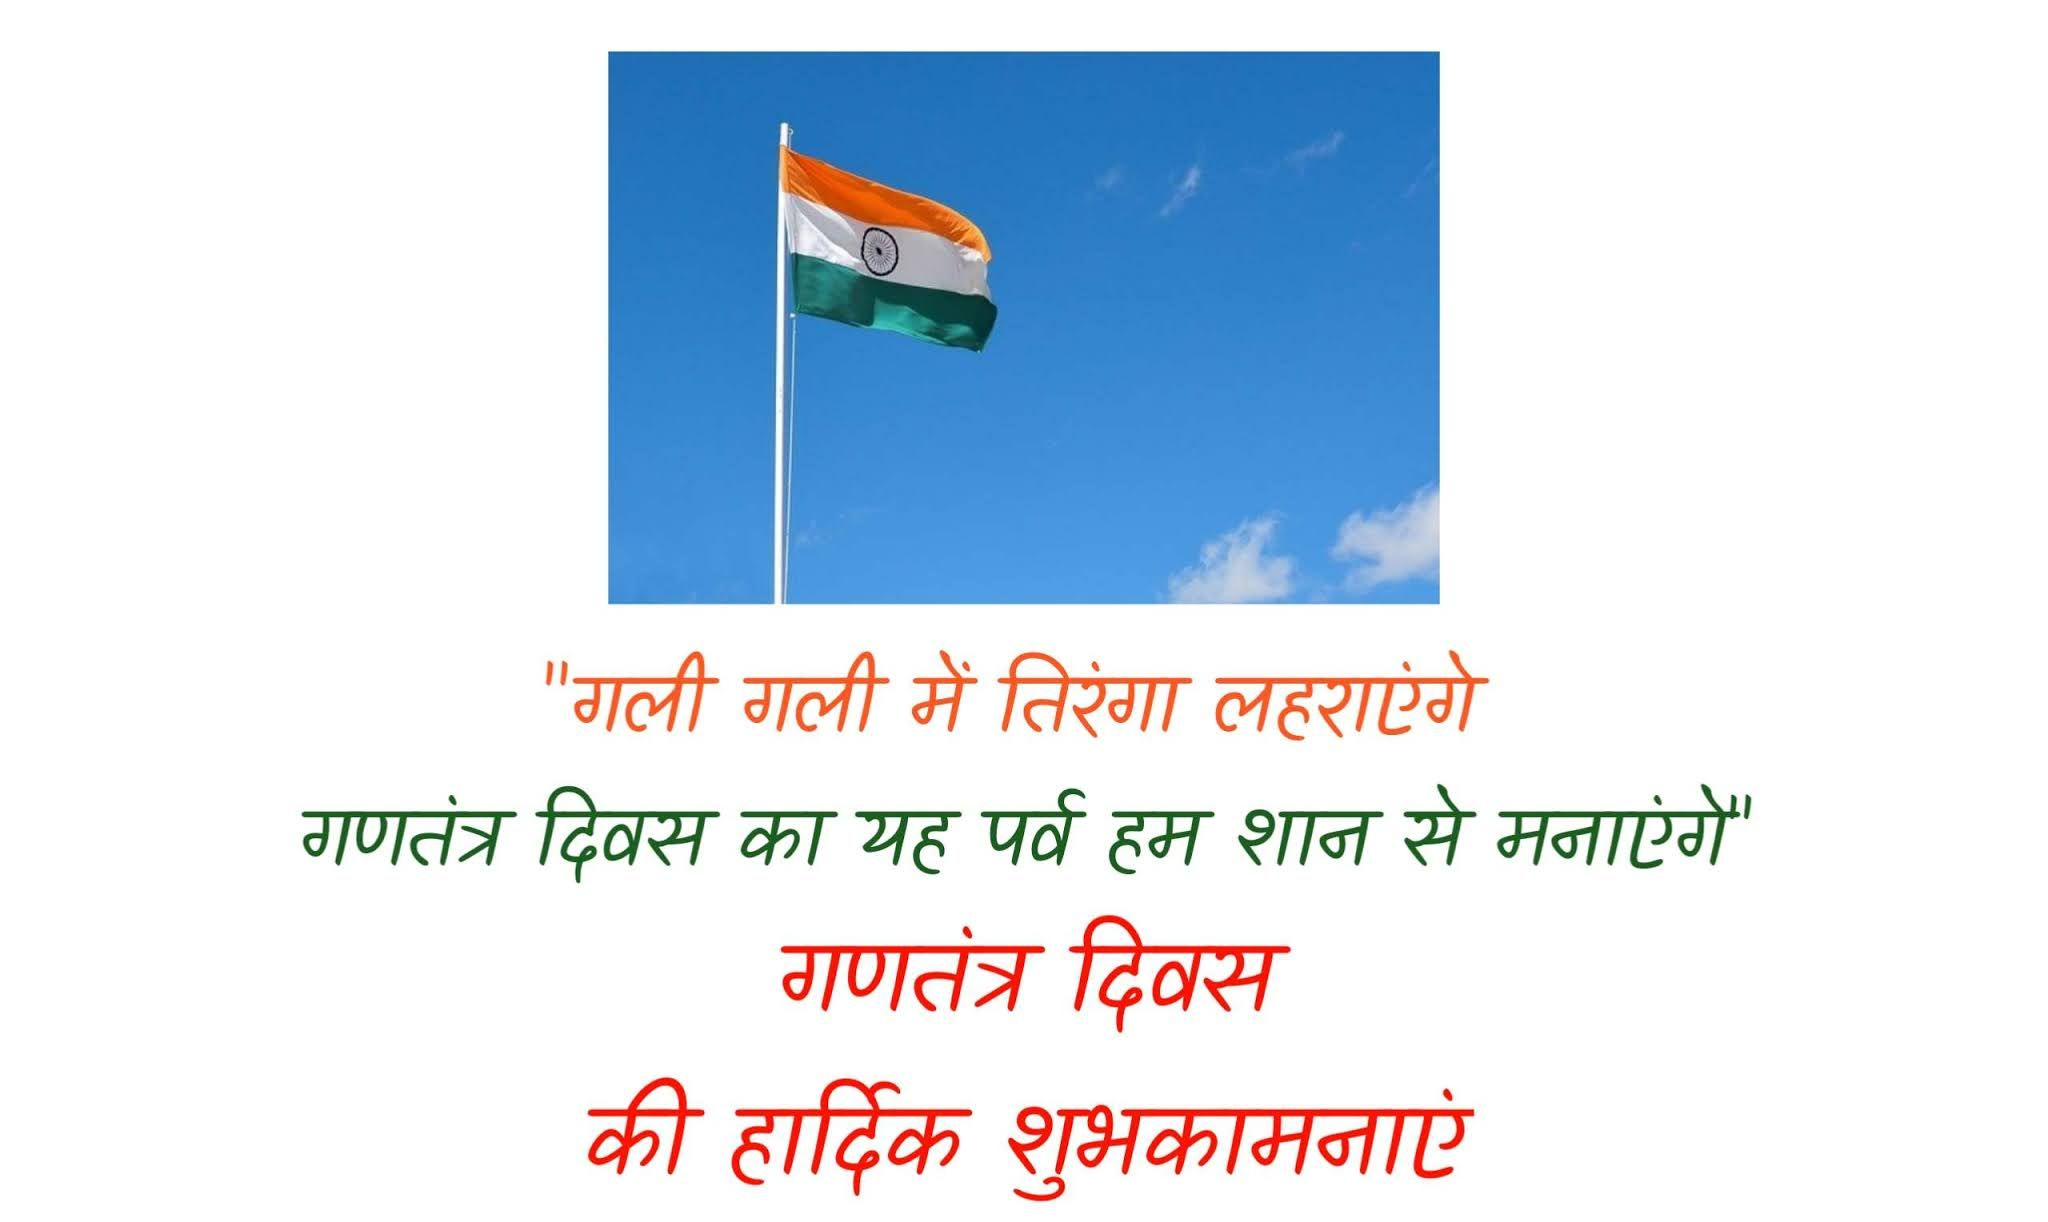 Happy Republic Day Wishes Images Watan Ki Shayari In 2021 Republic Day Quotes Republic Day Happy Republic Day Quotes